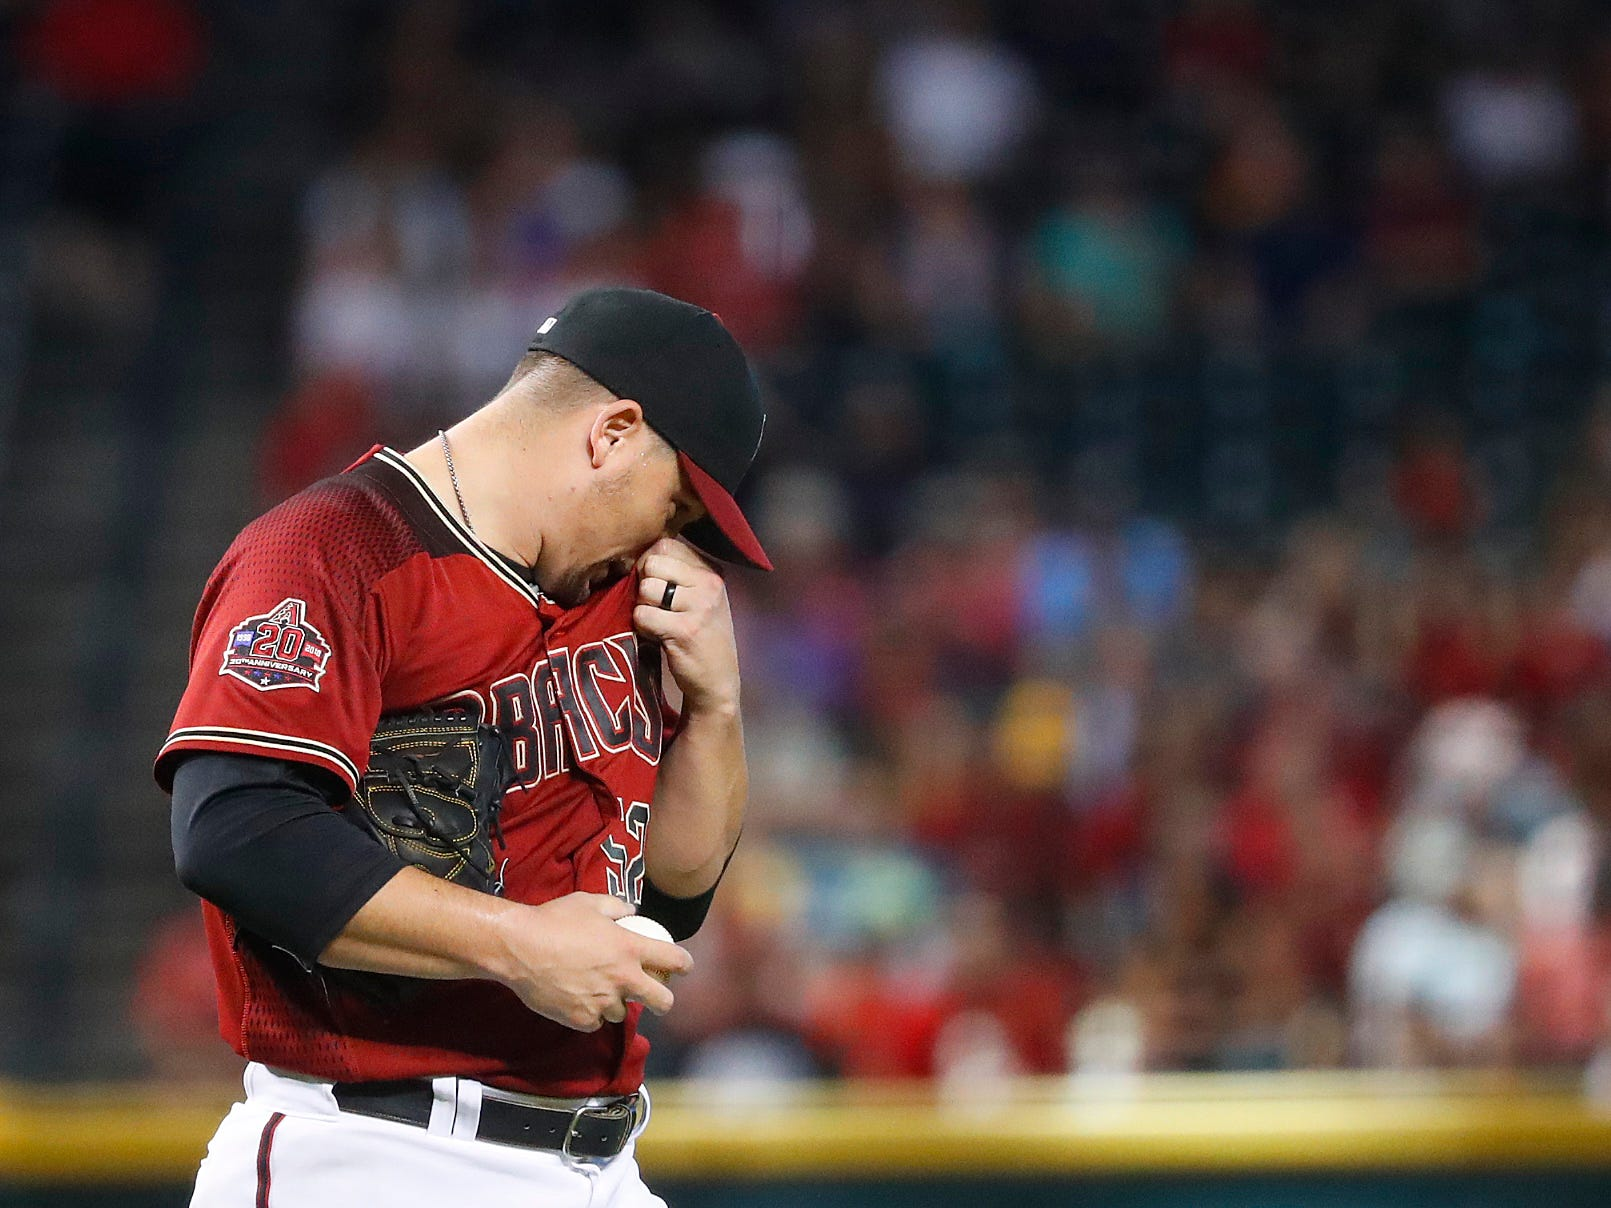 Diamondbacks Zack Godley (52) reacts after allowing a run in the fifth inning against the Rockies at Chase Field on Sept. 23, 2018.